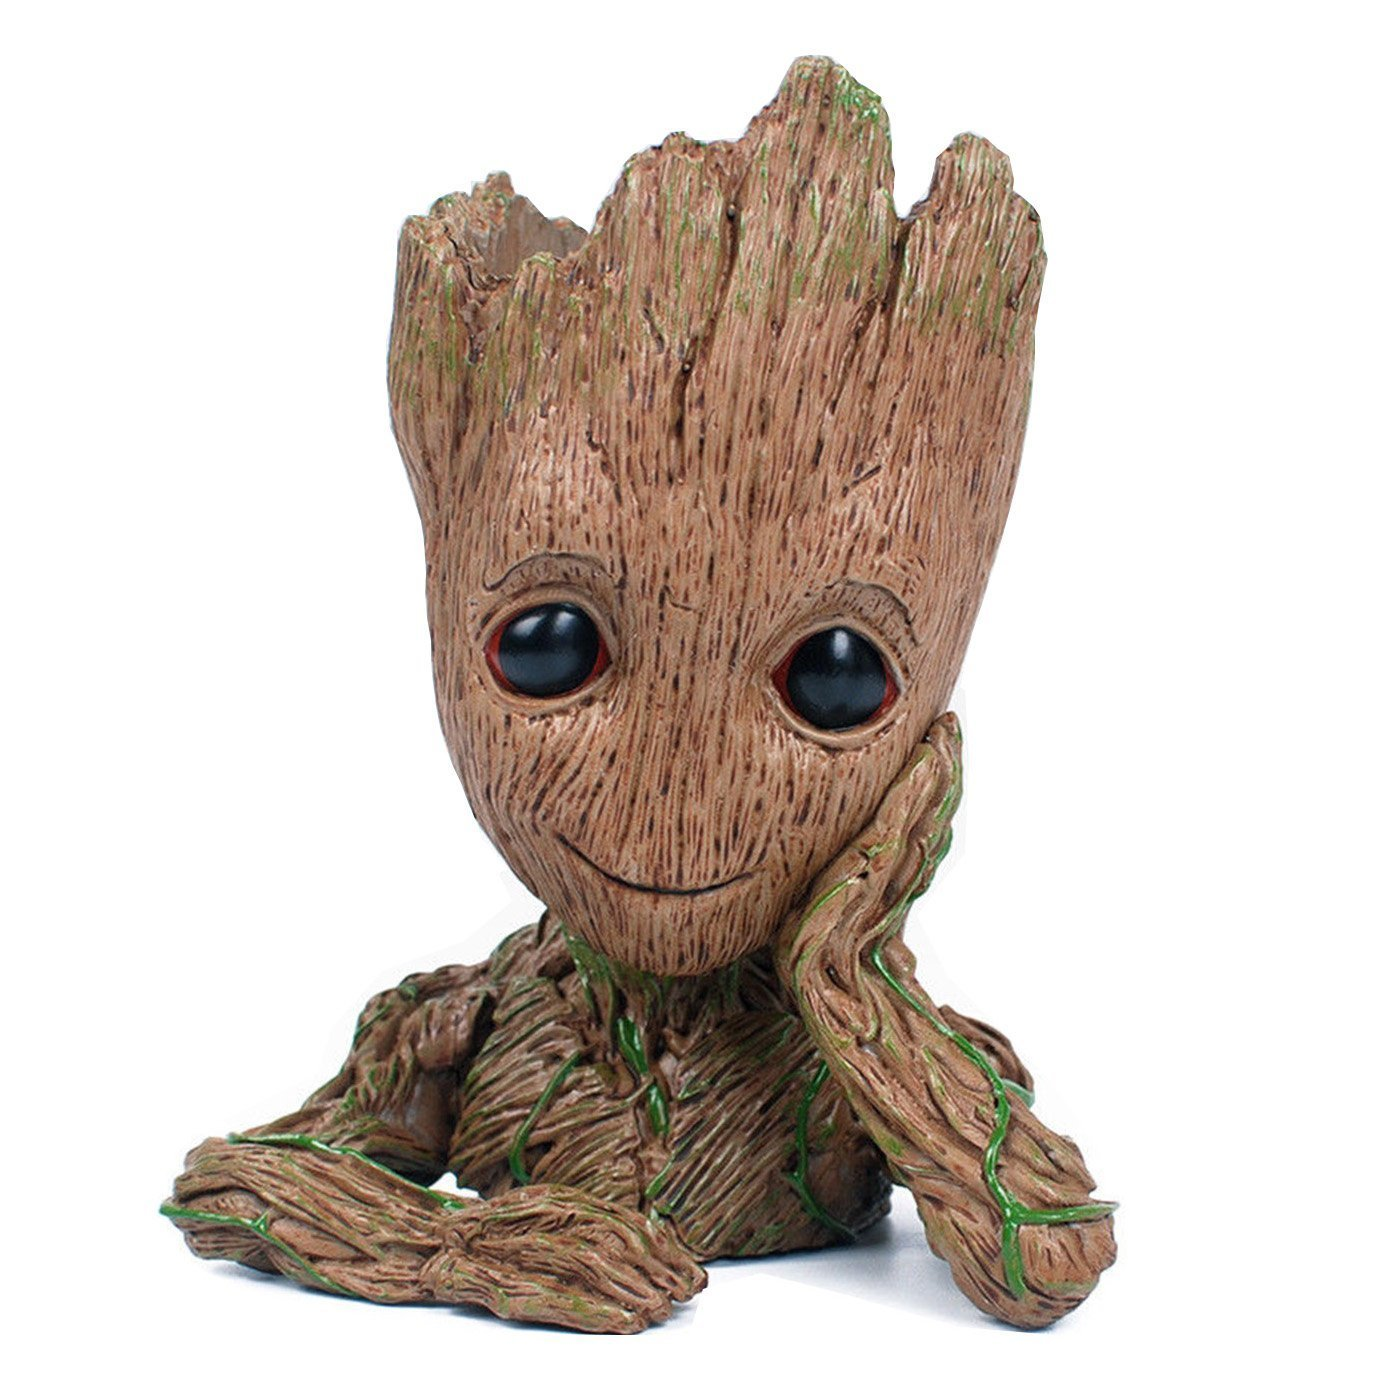 Happy_eshop Groot Action Figures Guardians of The Galaxy Flowerpot Baby Cute Model Toy Pen Pot Best Gift 6.3 Tong Ji Ying Tong Co. Ltd